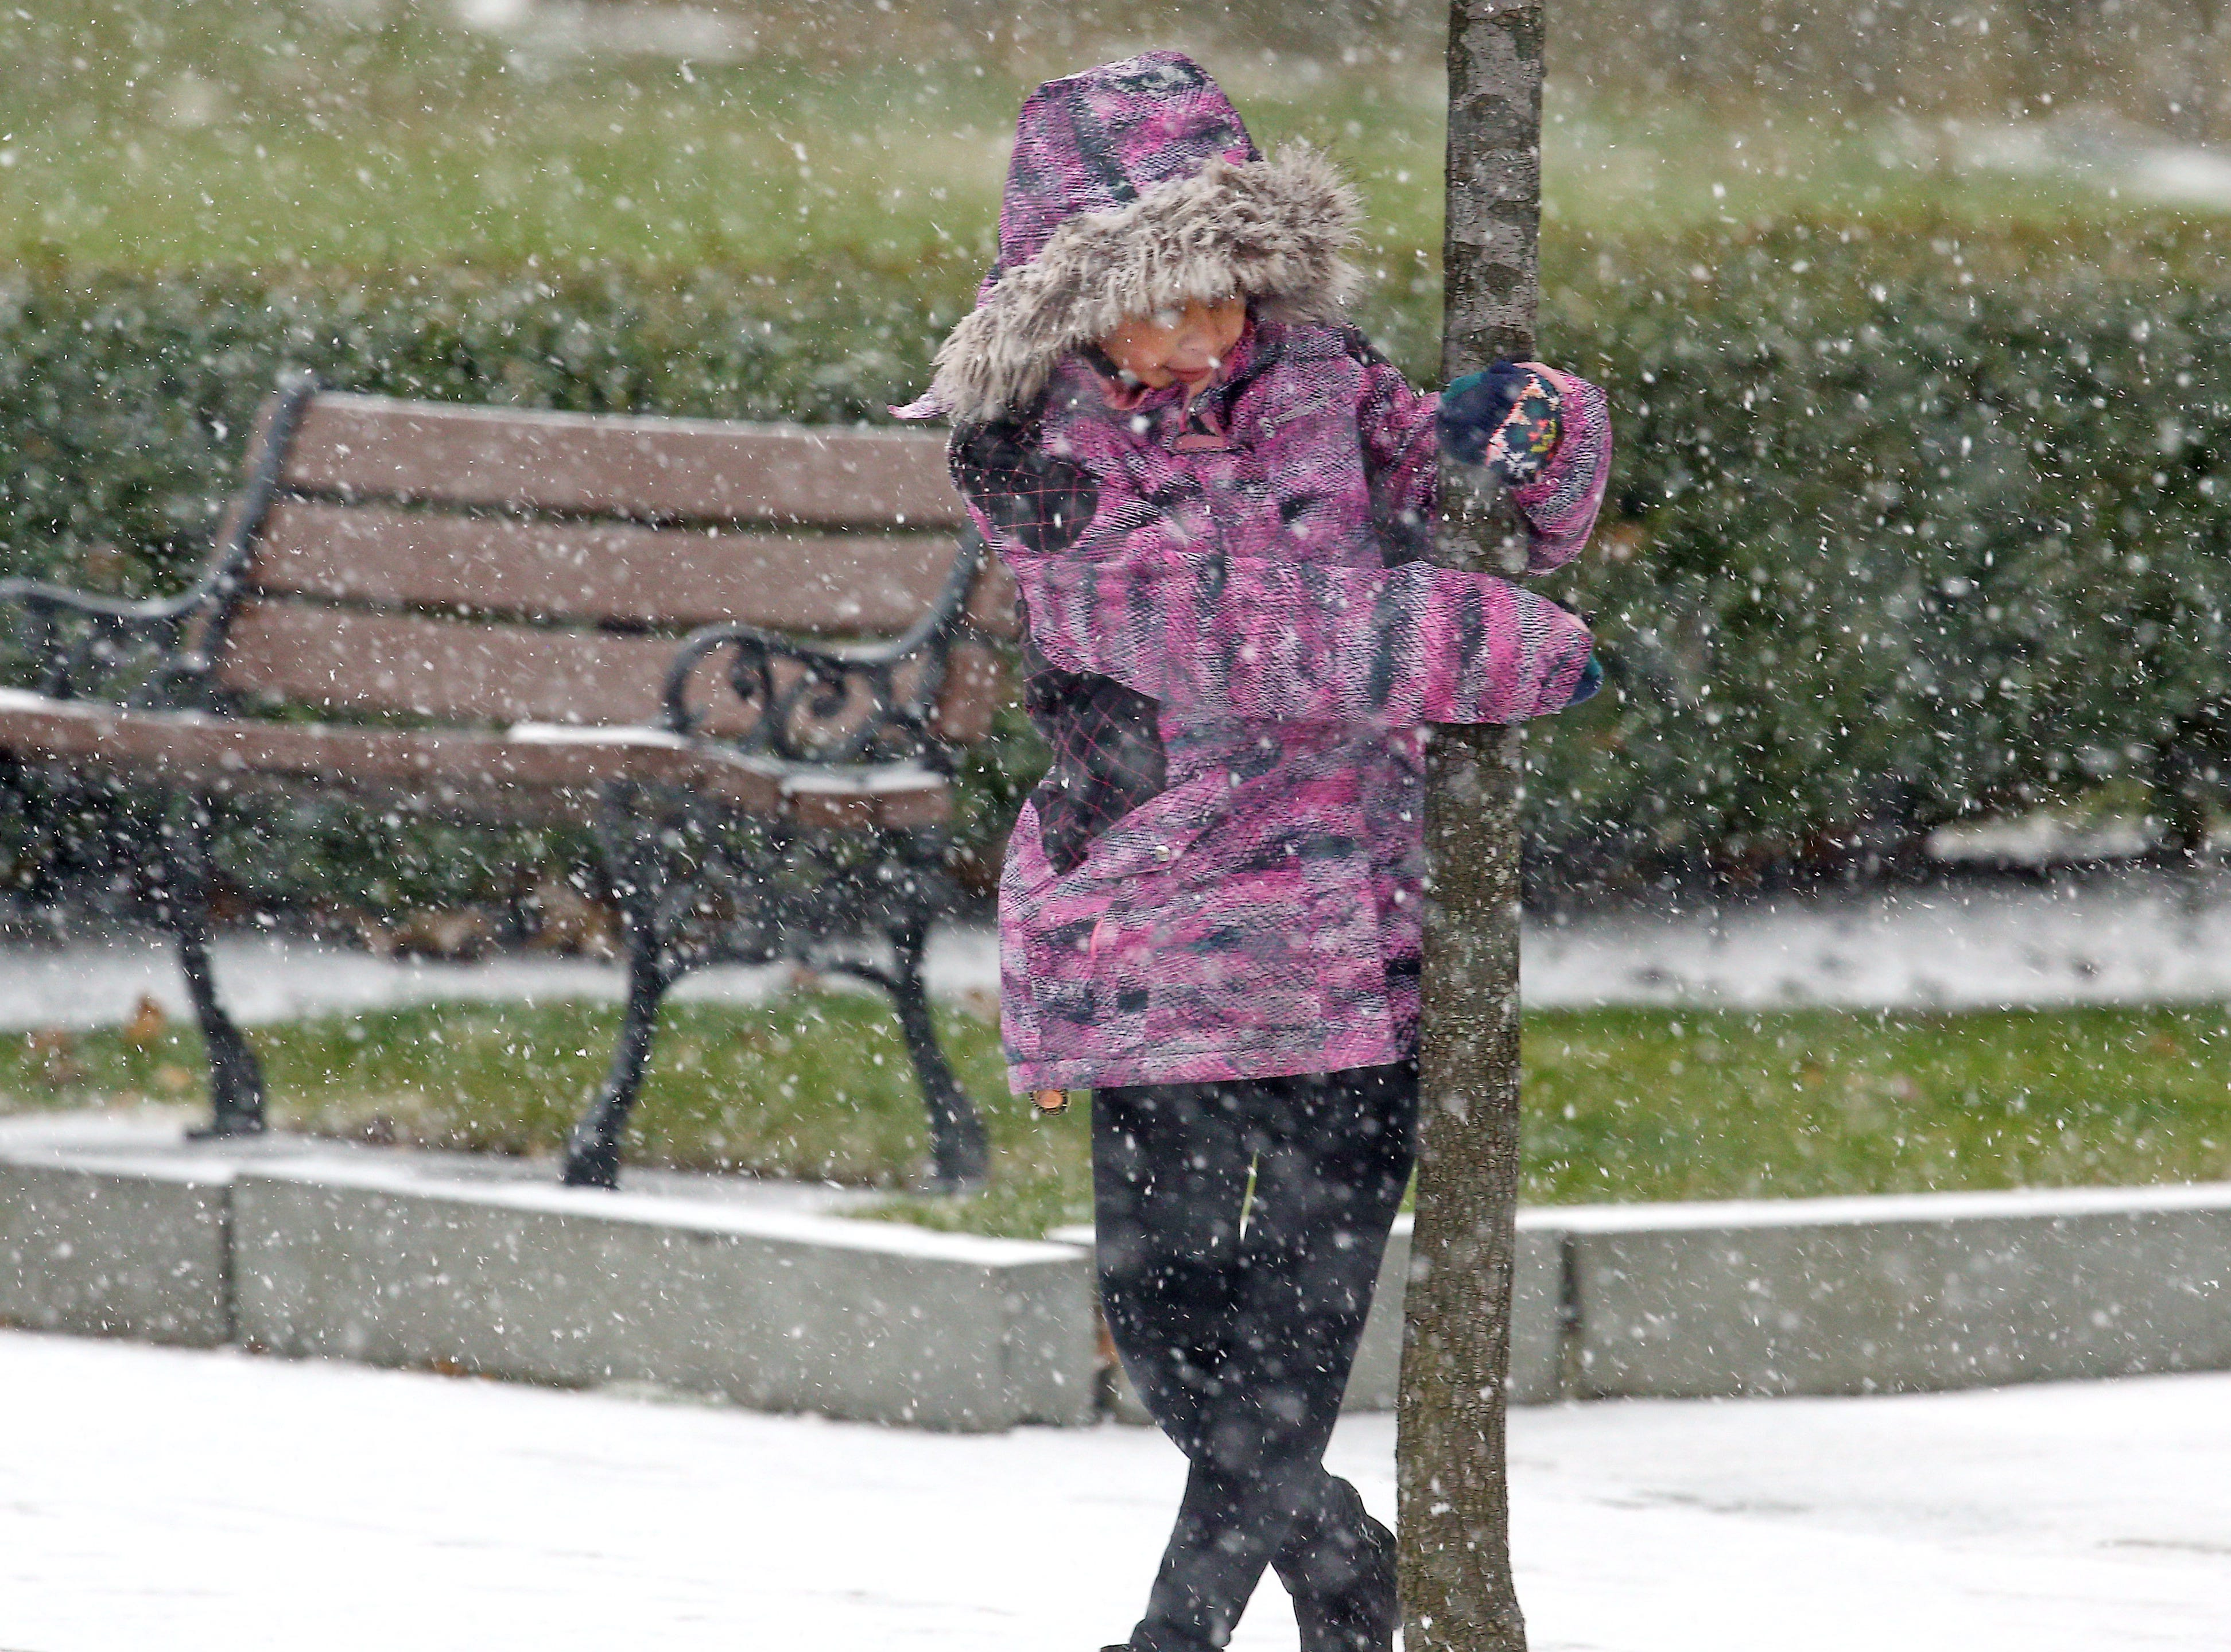 9-year-old Khloe Wedderburn of Morristown swings around a tree on South Street enjoying the weather at the beginning of a predicted nor'easter, scheduled to dump over half a foot of snow and freezing rain on the area.  November 15, 2018, Morristown, NJ